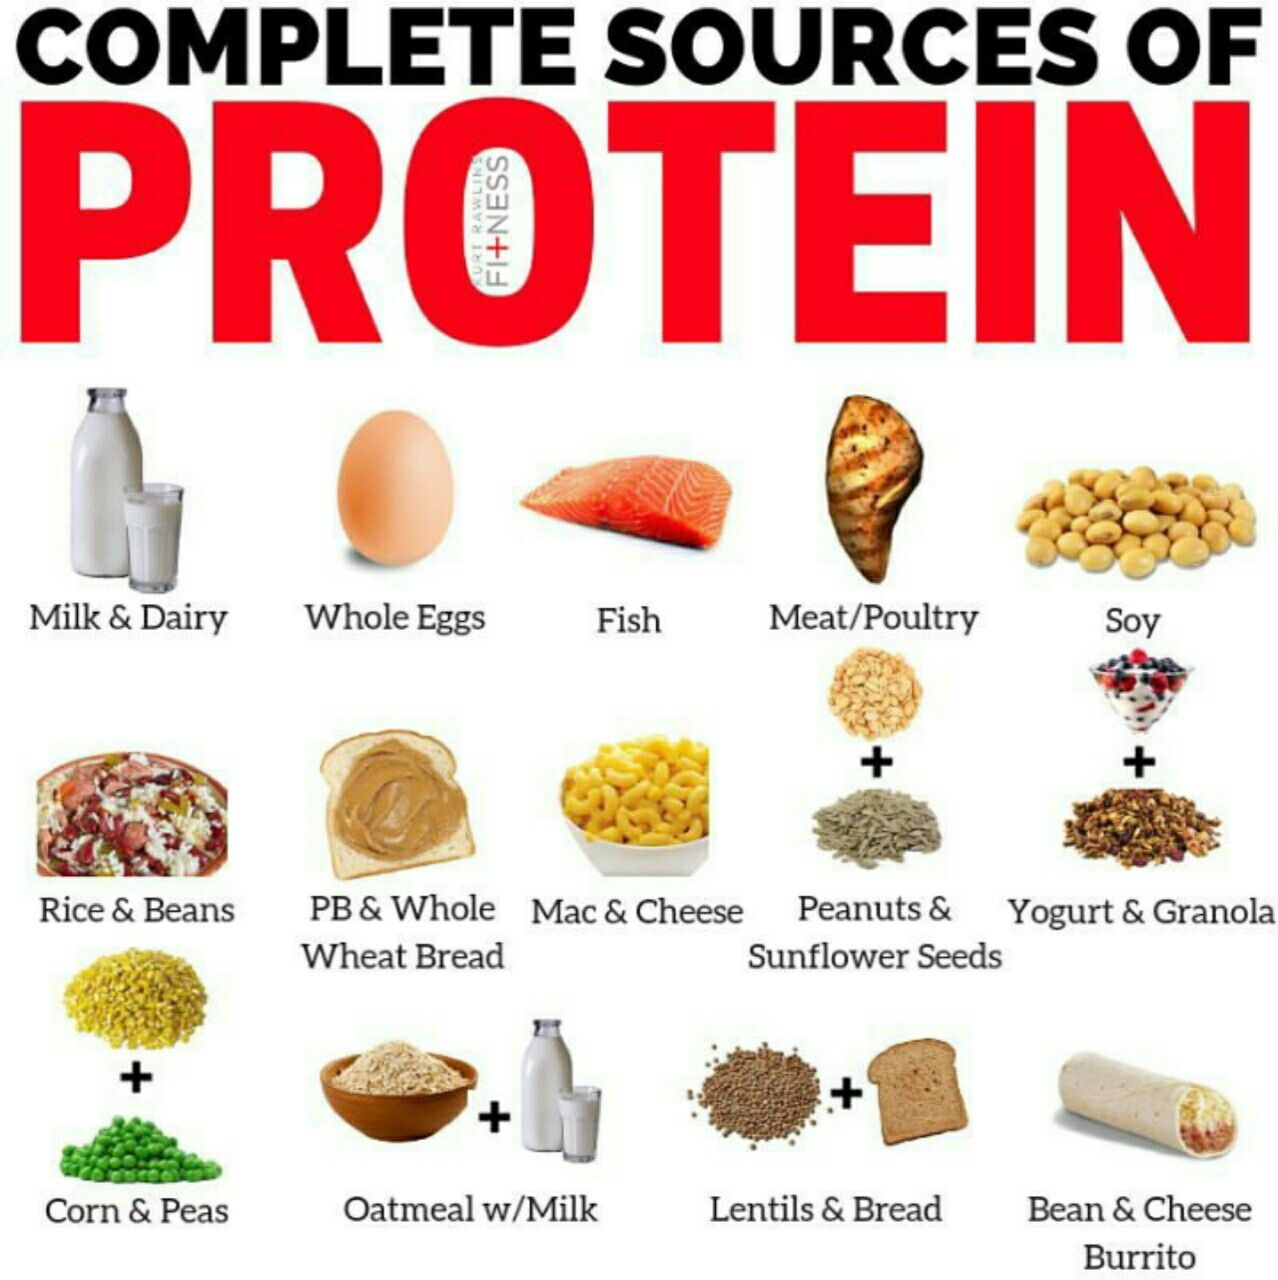 The Complete Sources Of Protein! Comment Your Favorite One